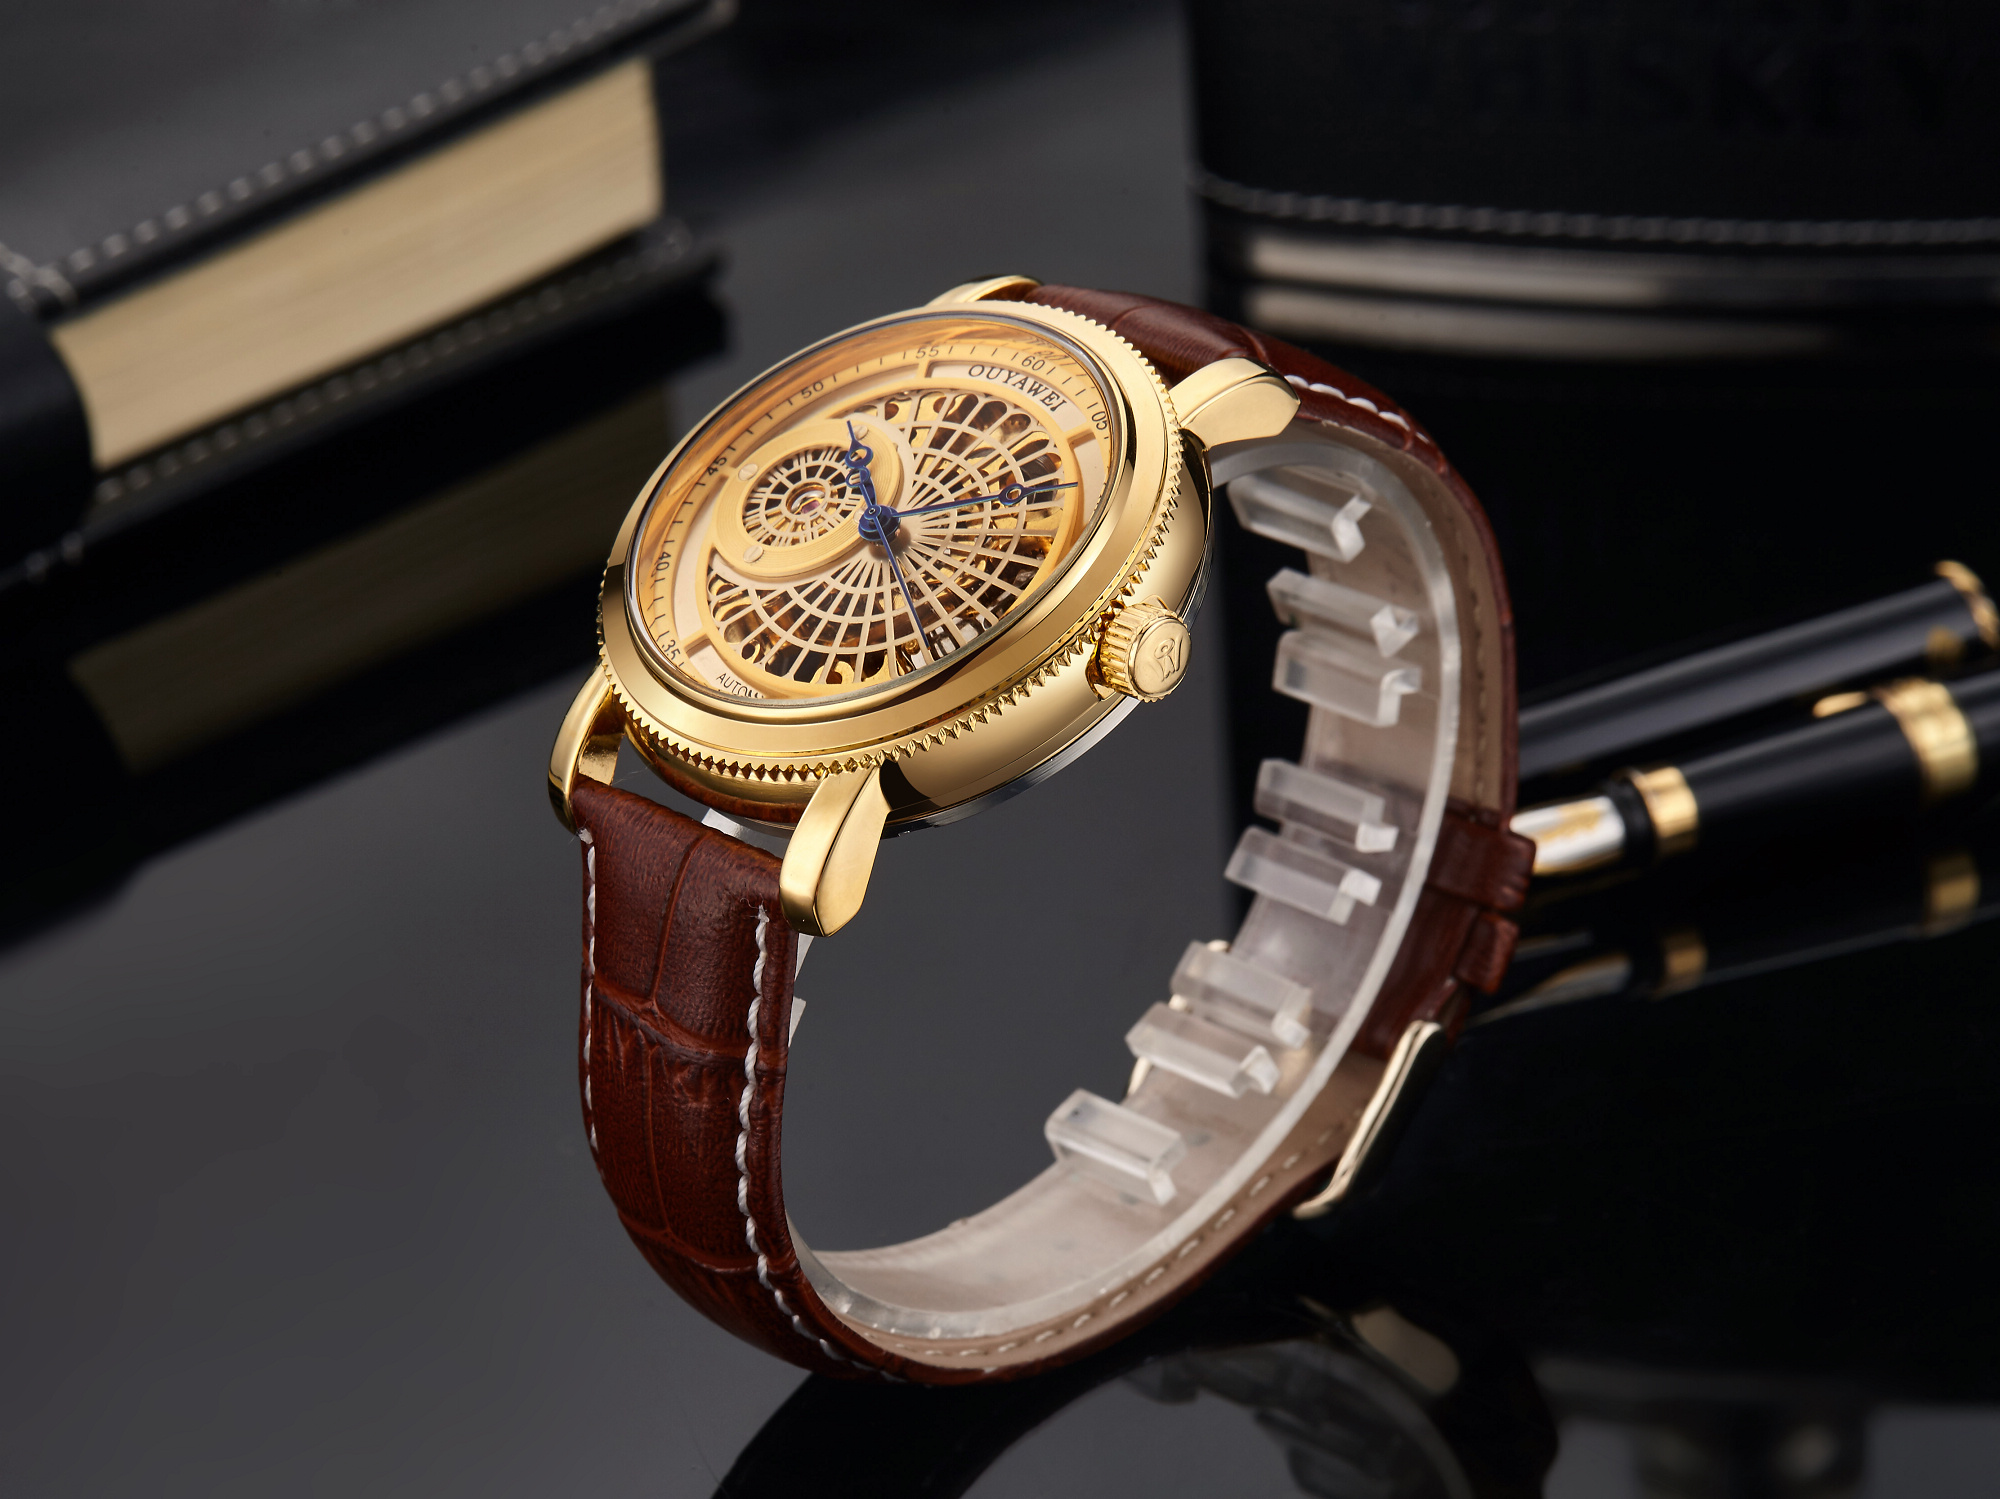 H647c3f57f8234b80aead3dd8ef6911fa1 Mechanical Gold Watch Luxury Brand Self-winding